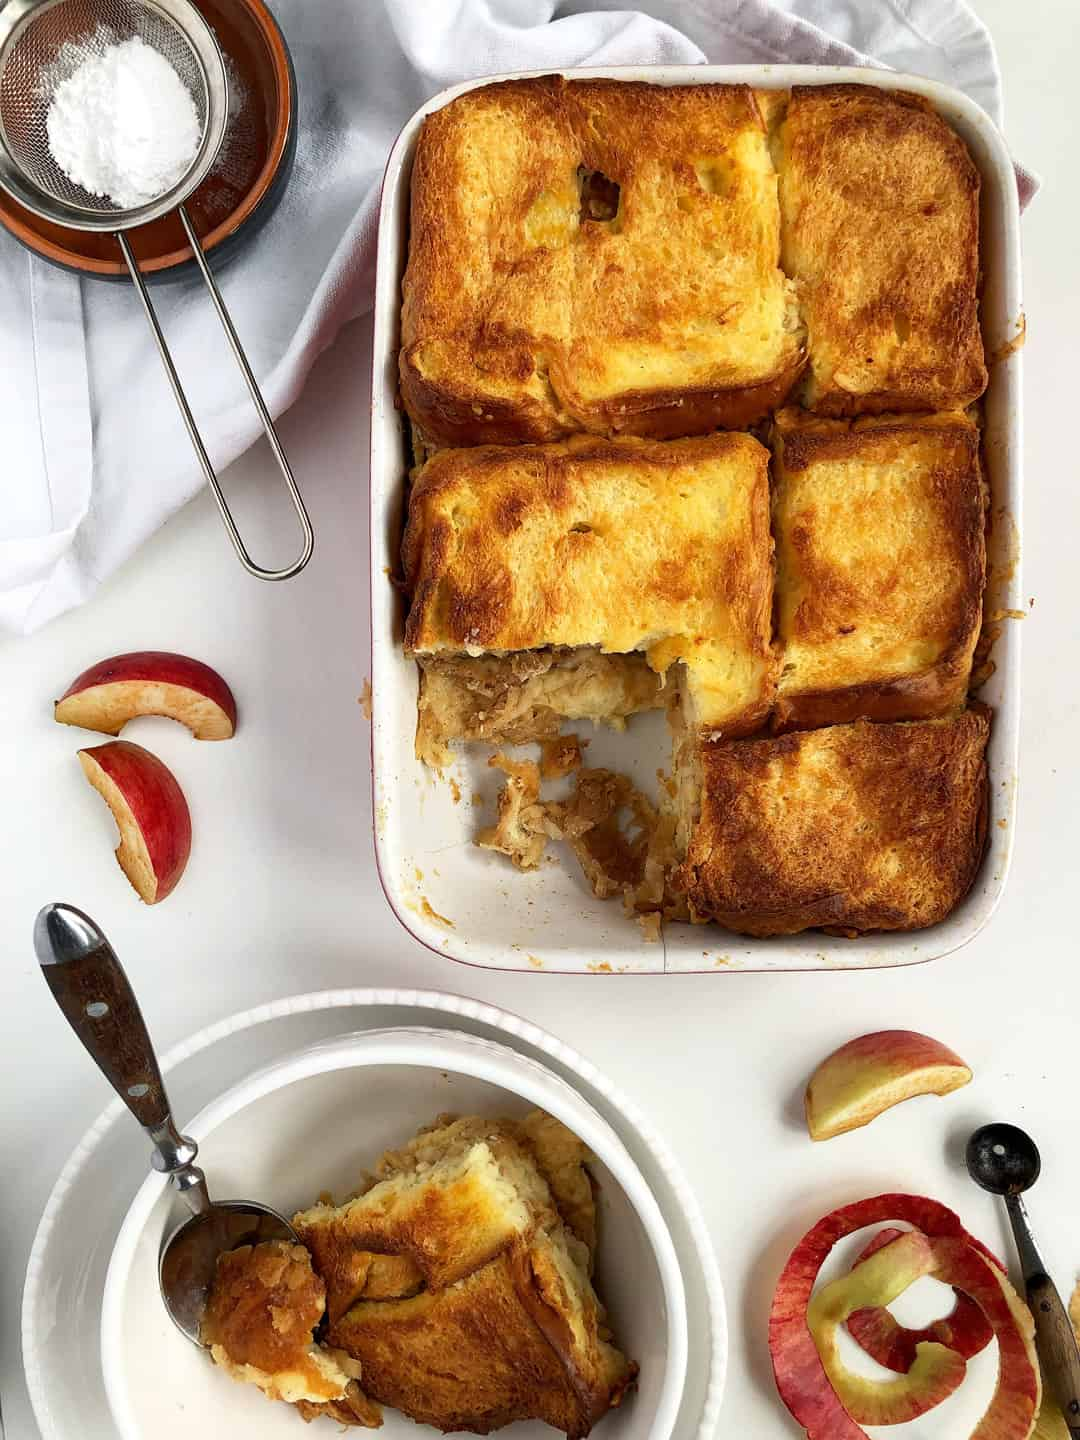 Layered Brioche Bread Pudding with Grated Apples